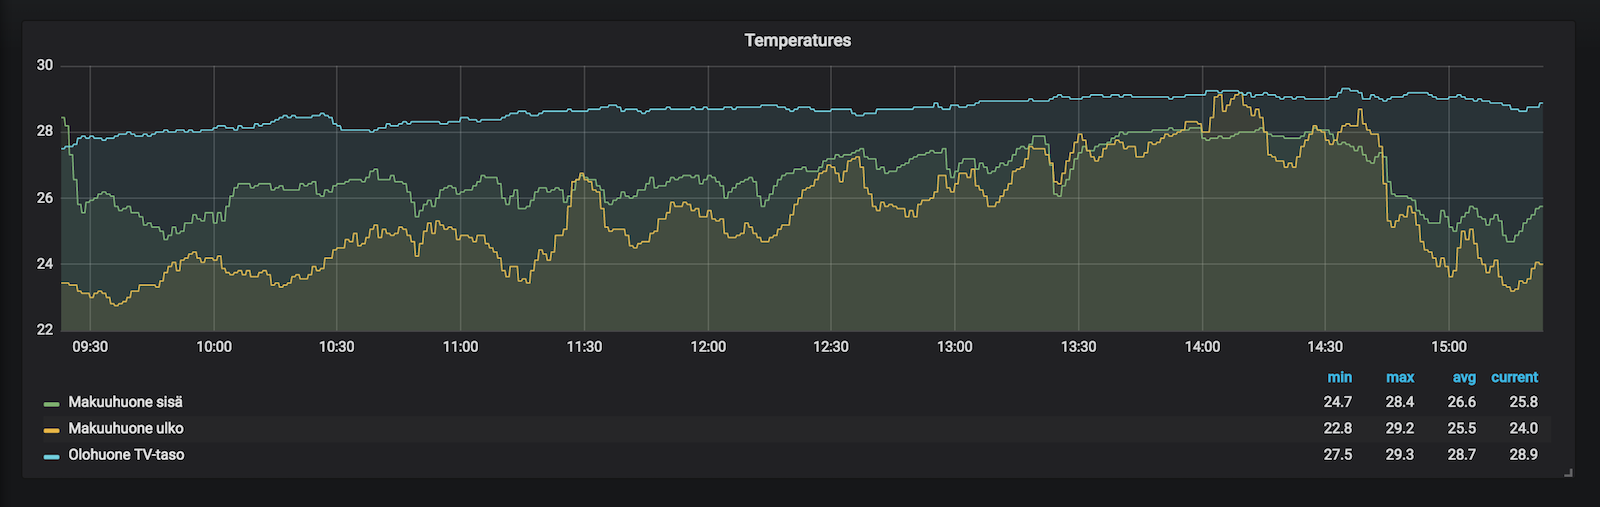 InfluxDB and Grafana for storing and showing temperature data